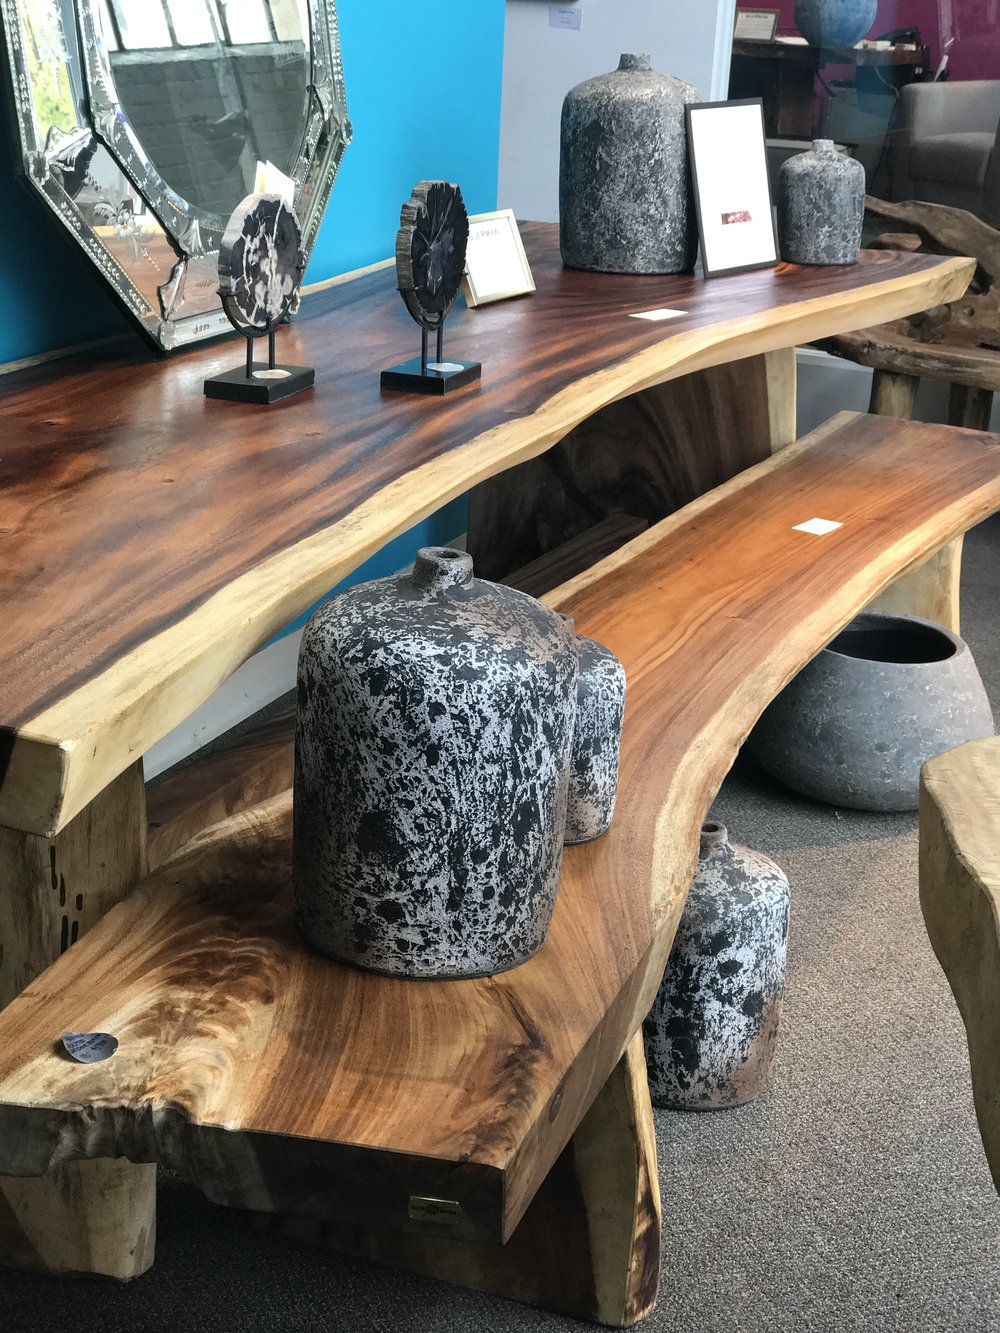 Majestic Live Edge DIning table. Single slab wood dining table. Blue Moon Furniture Store, Winnipeg, Manitoba, Canada. Modern, Contemporary cool luxury furniture. Local design,.JPG